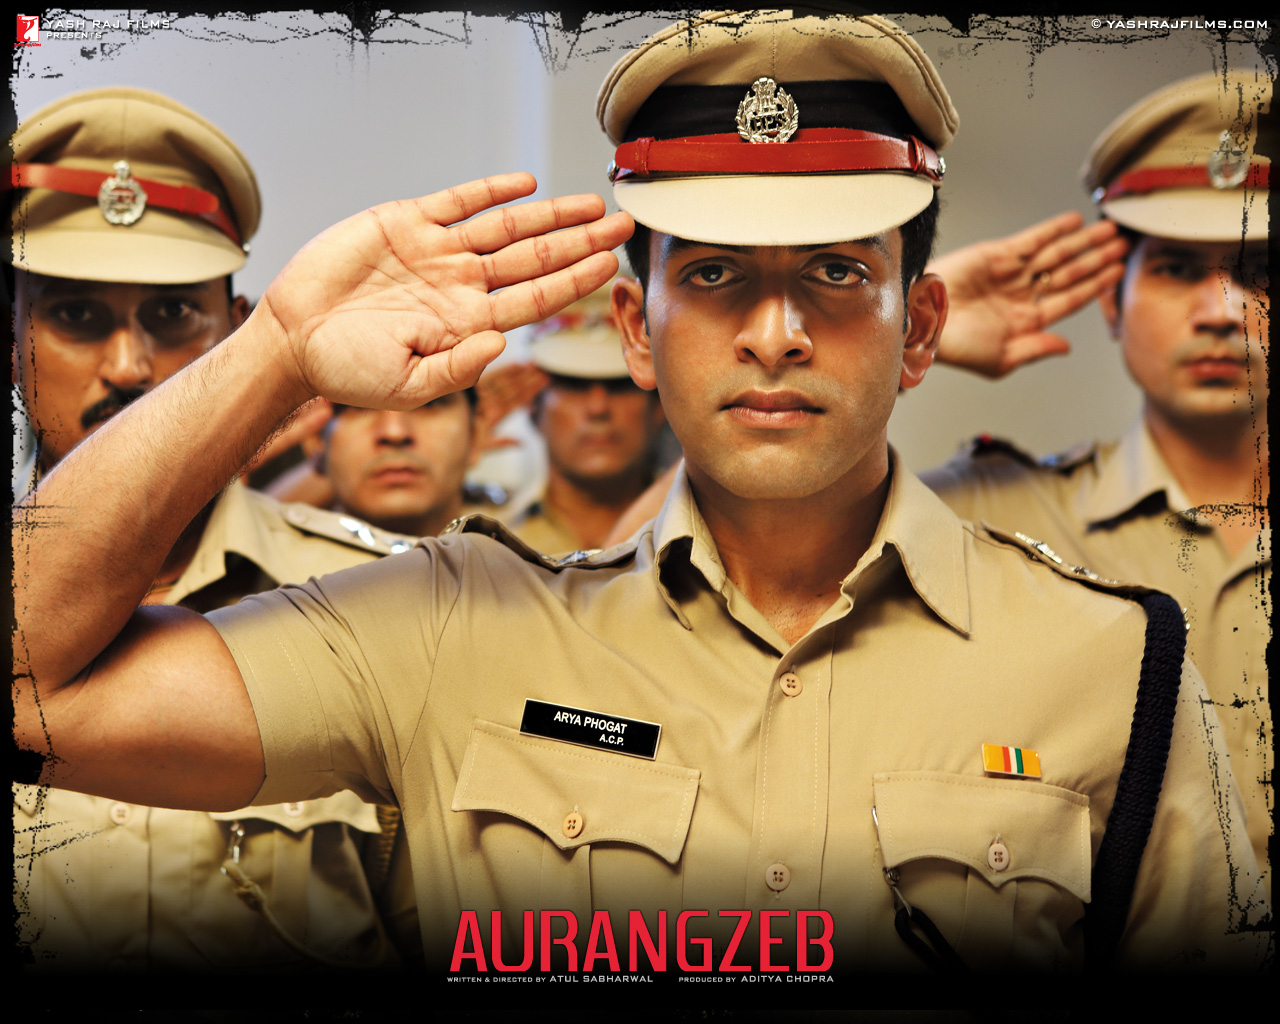 3 Preview: Aurangzeb Synopsis and Stills!